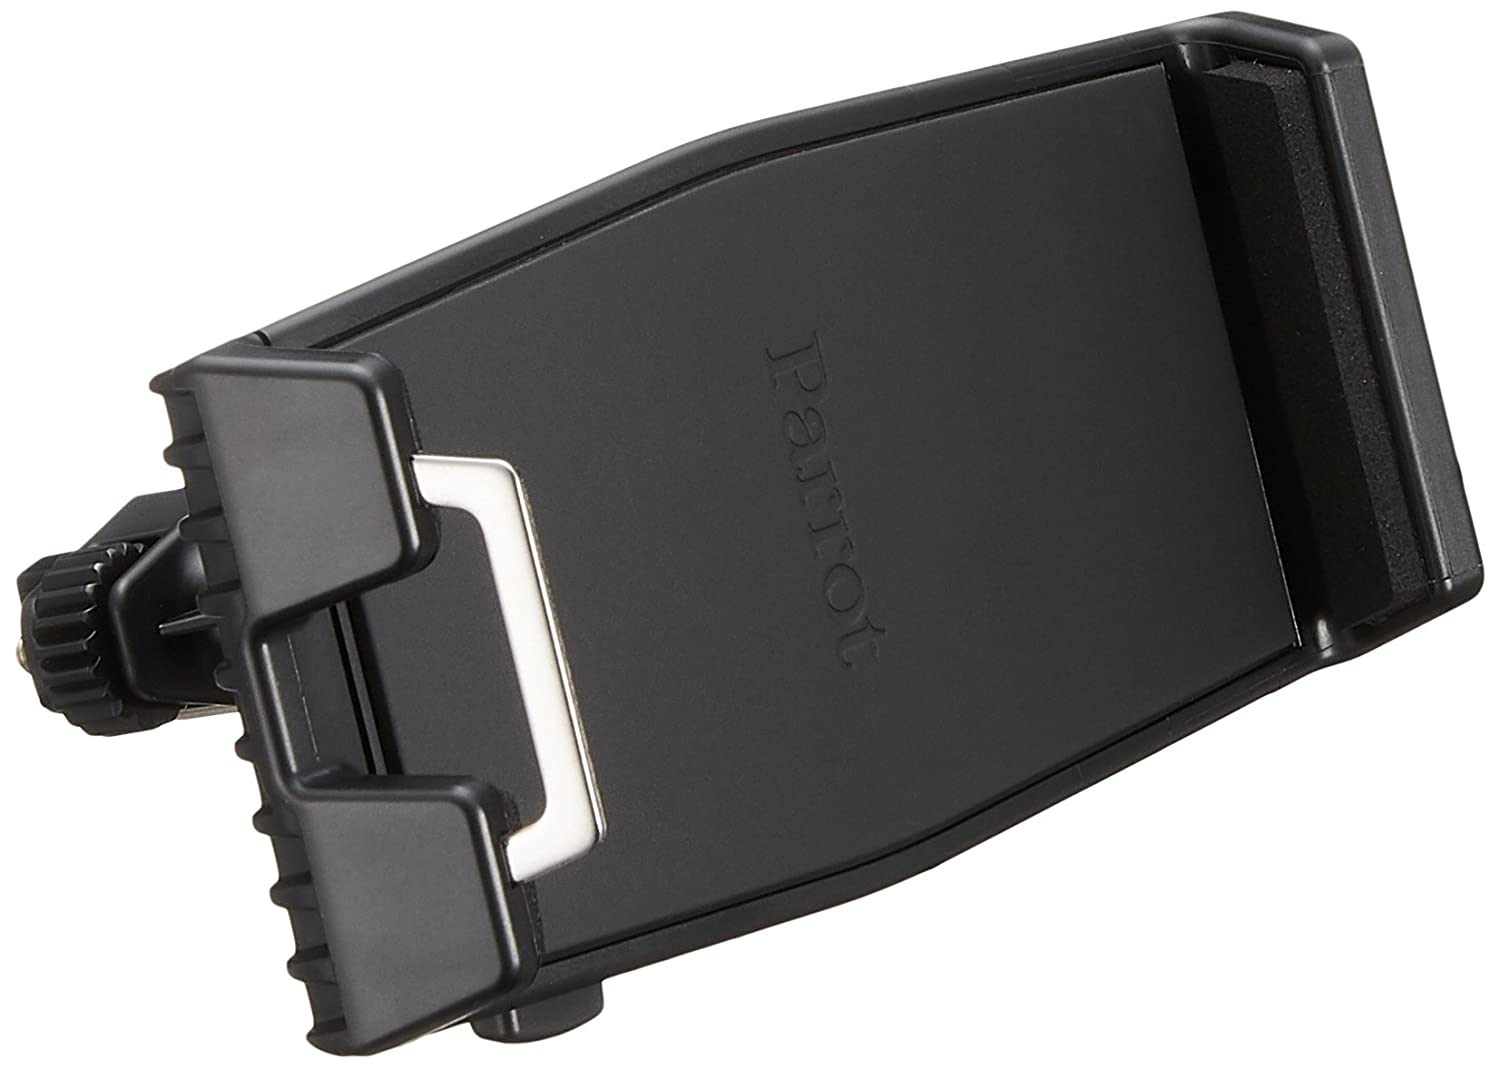 Parrot PF070268AA Skycontroller 2 Smartphone Holder